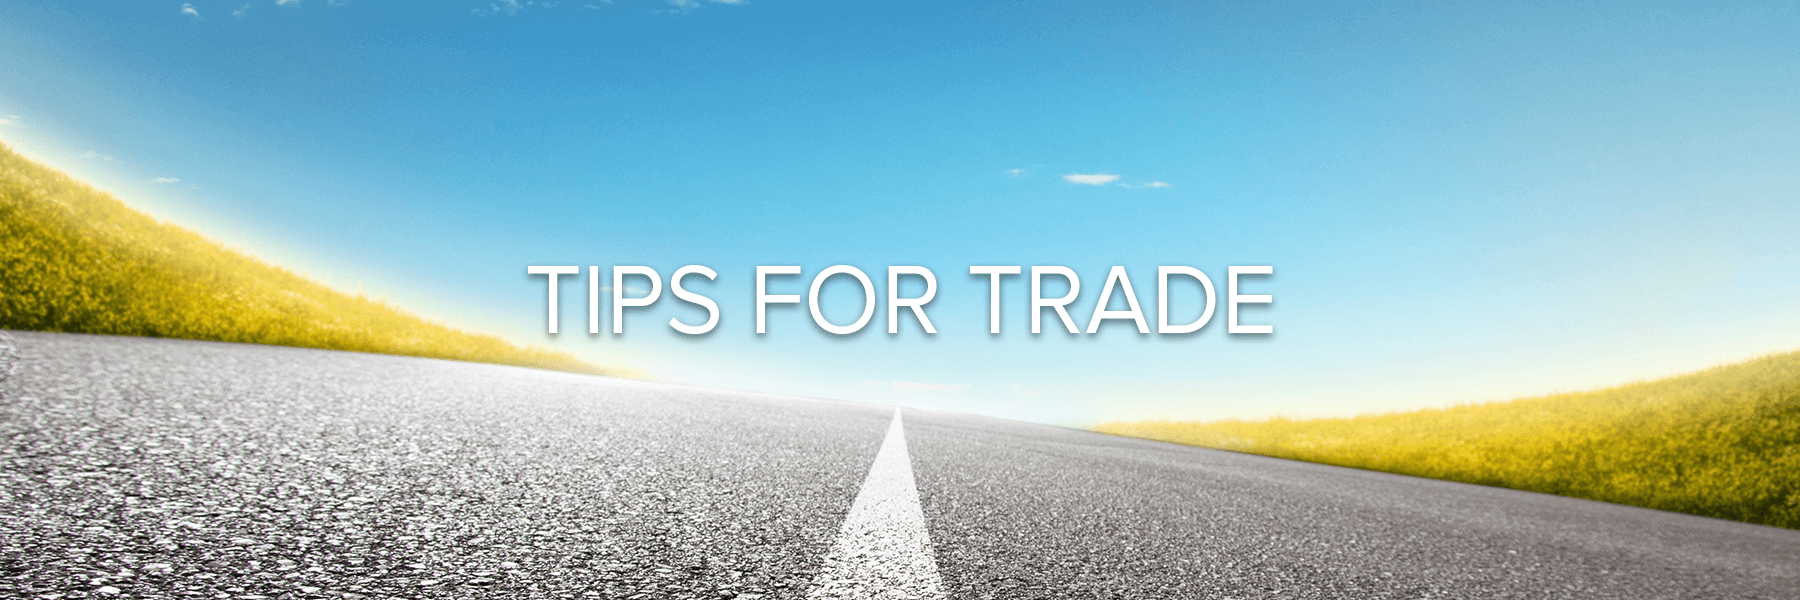 Tips for Trade